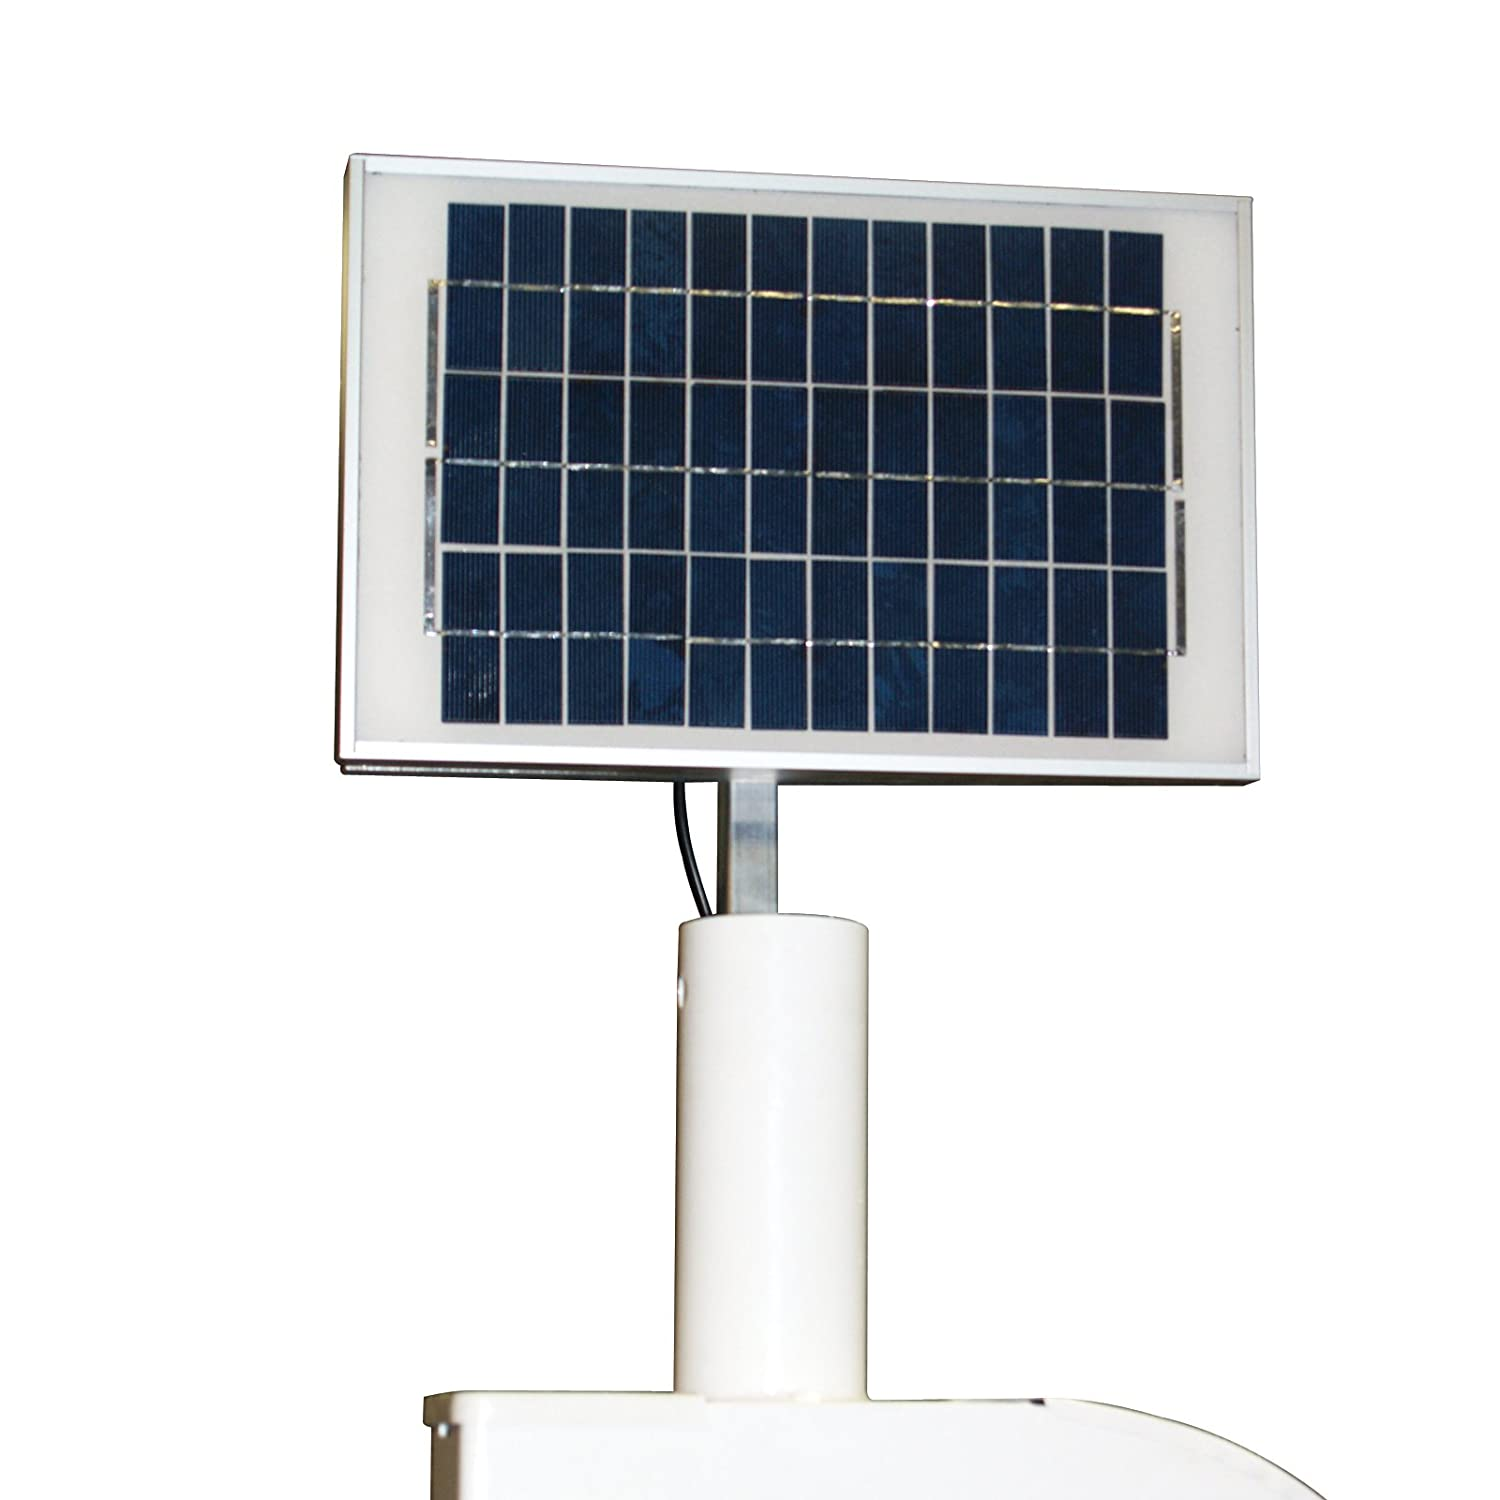 Marine solar panel installations first mate marine inc - Amazon Com Extreme Max 3004 0184 Boat Lift Boss 24v Solar Charging System Sports Outdoors